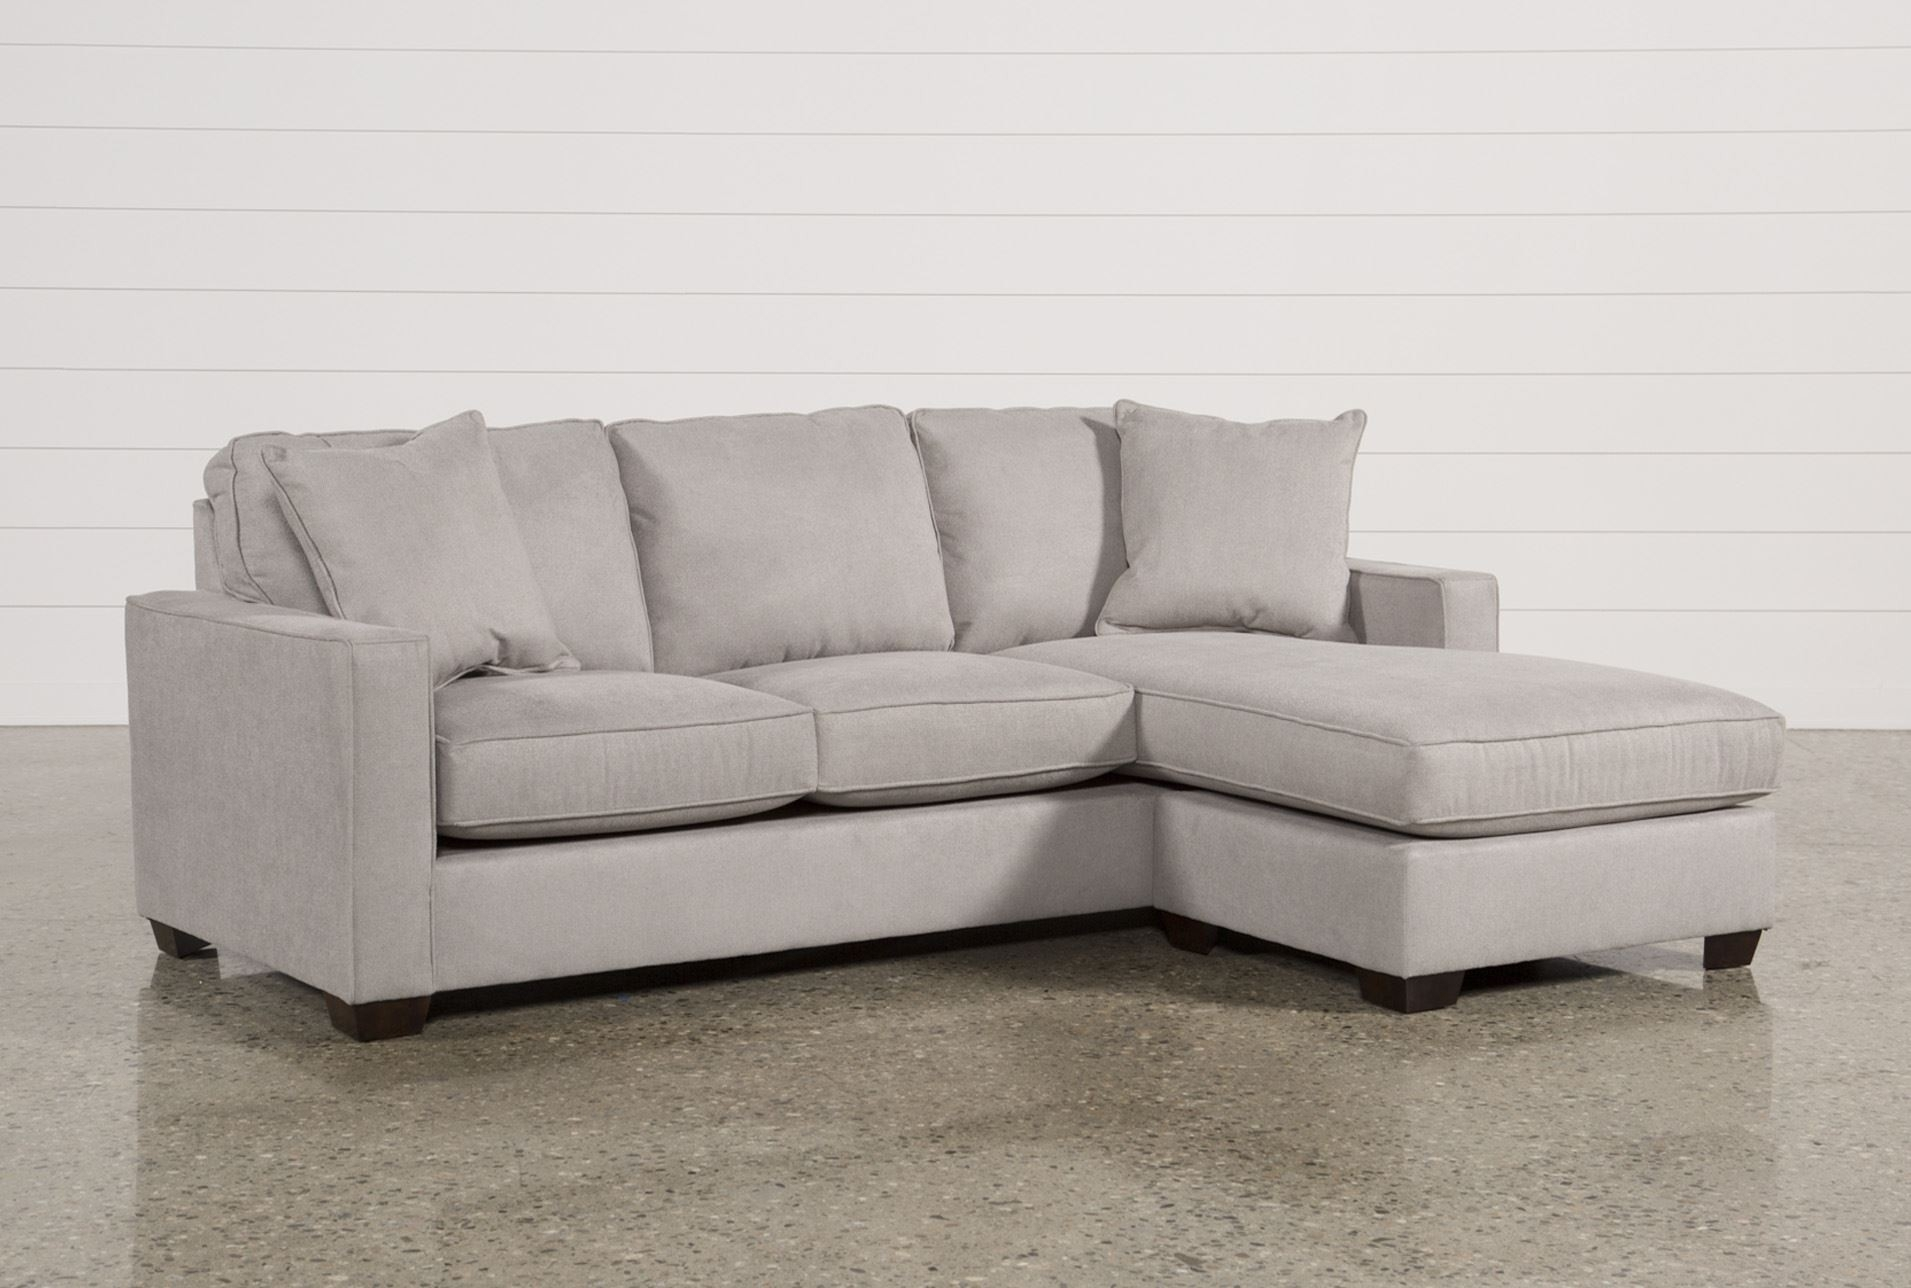 Living Spaces Sectional Sofas Kerri 2 Piece W Raf Chaise 107153 0 Throughout Kerri 2 Piece Sectionals With Laf Chaise (Image 19 of 25)